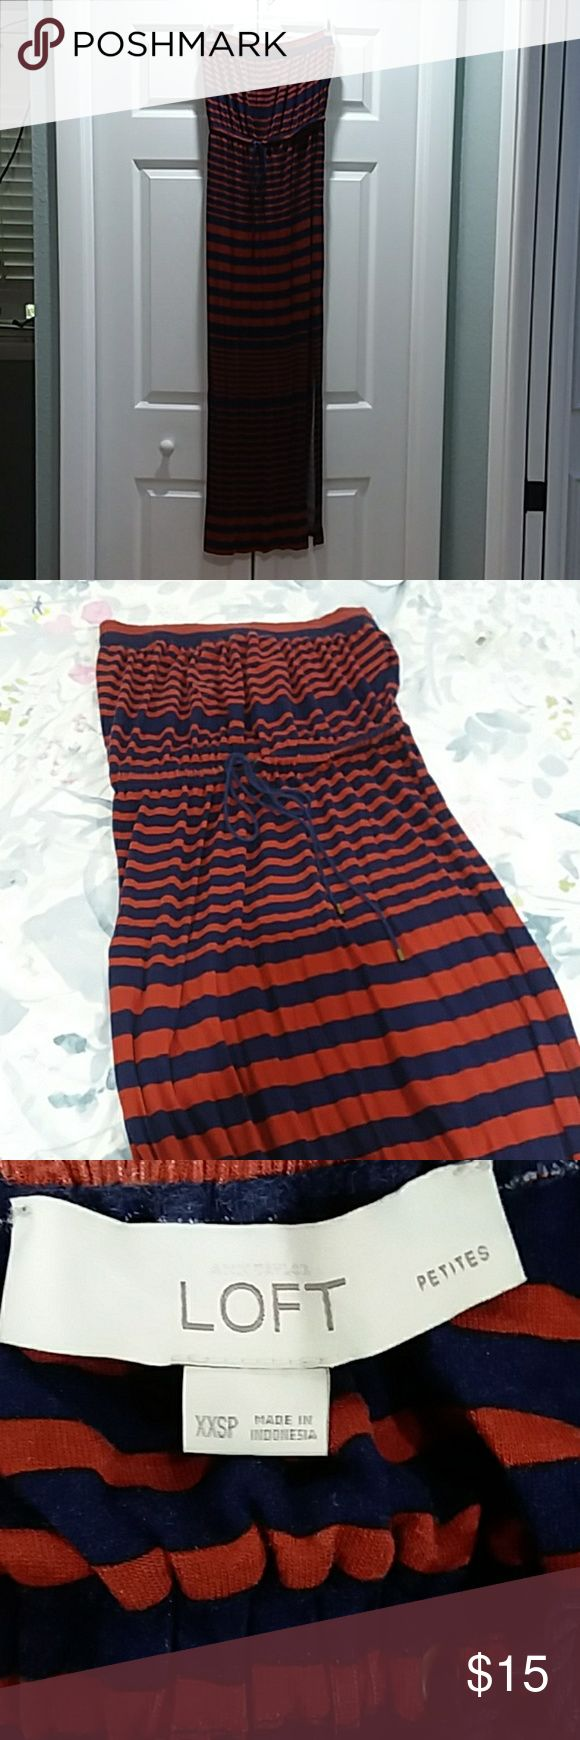 Strapless maxi dress from LOFT Navy blue and blood orange strapless maxi dress. Slit up left side of dress that goes above knee. Ties at waistband. Cute and comfy! Only worn a couple of times, great condition! LOFT Dresses Maxi